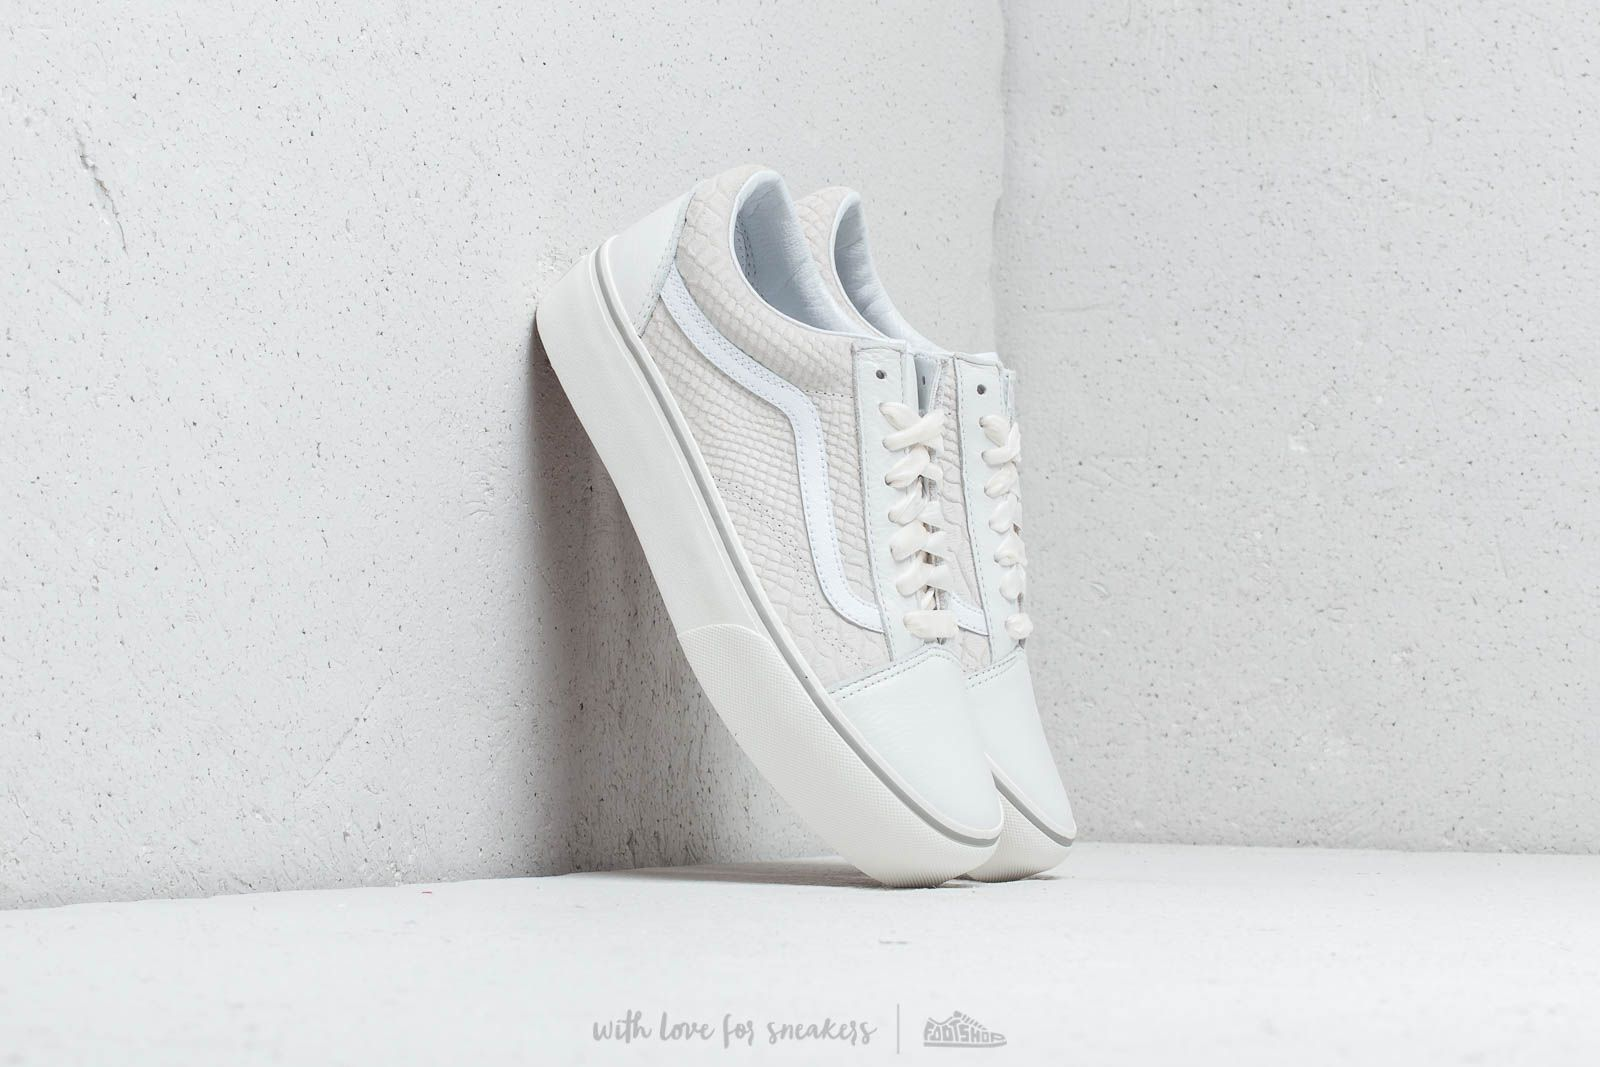 e6644eee1b00a2 Vans Old Skool Platform (Leather) Snake  White at a great price 100 €